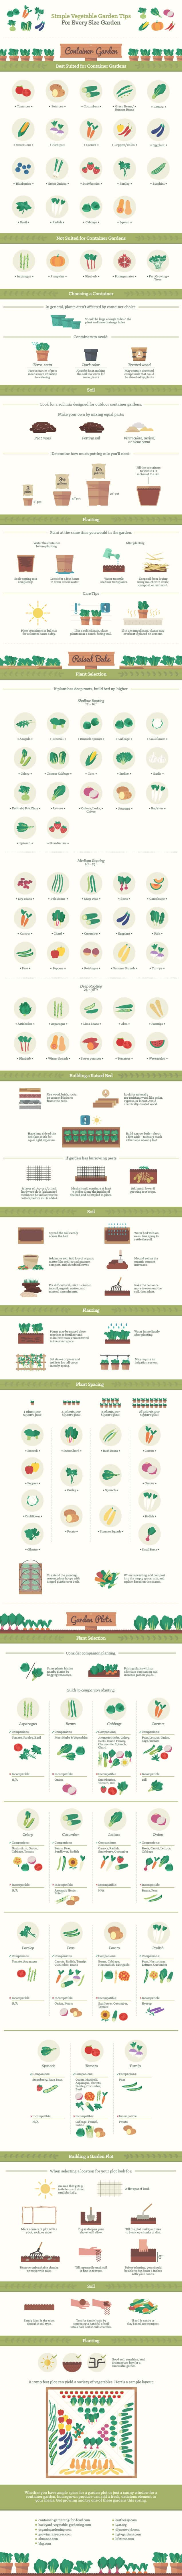 Simple Vegetable Garden Tips Infographic